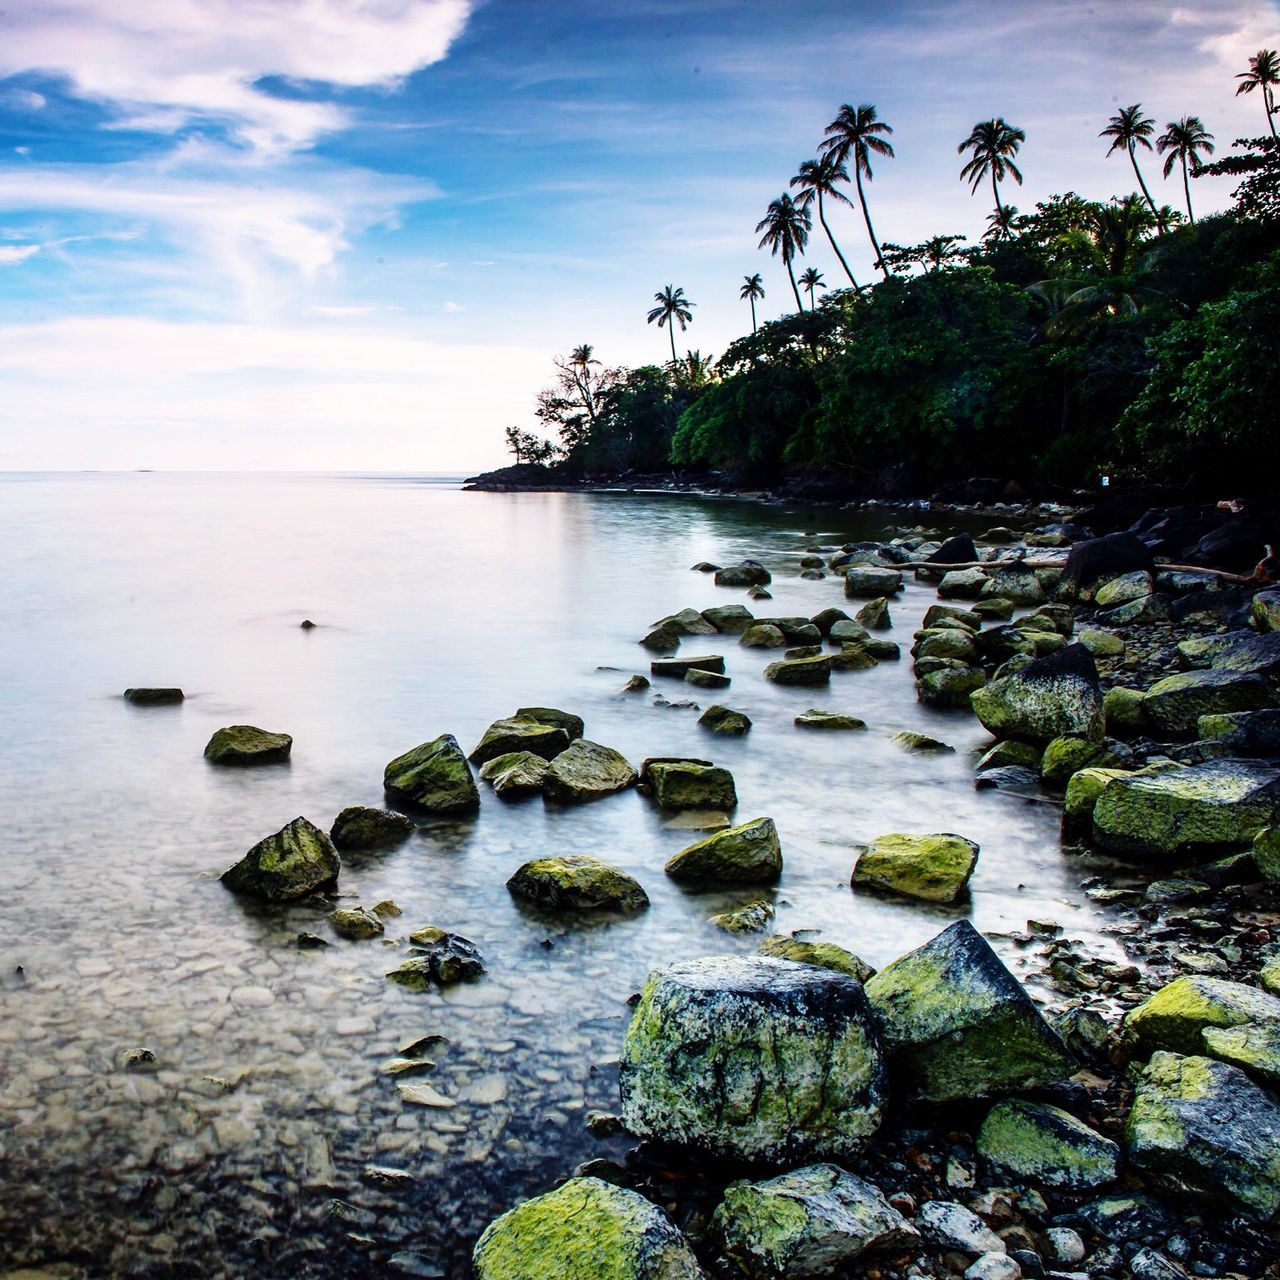 rock - object, sky, water, nature, tranquility, tranquil scene, no people, scenics, beauty in nature, outdoors, sea, day, cloud - sky, tree, beach, horizon over water